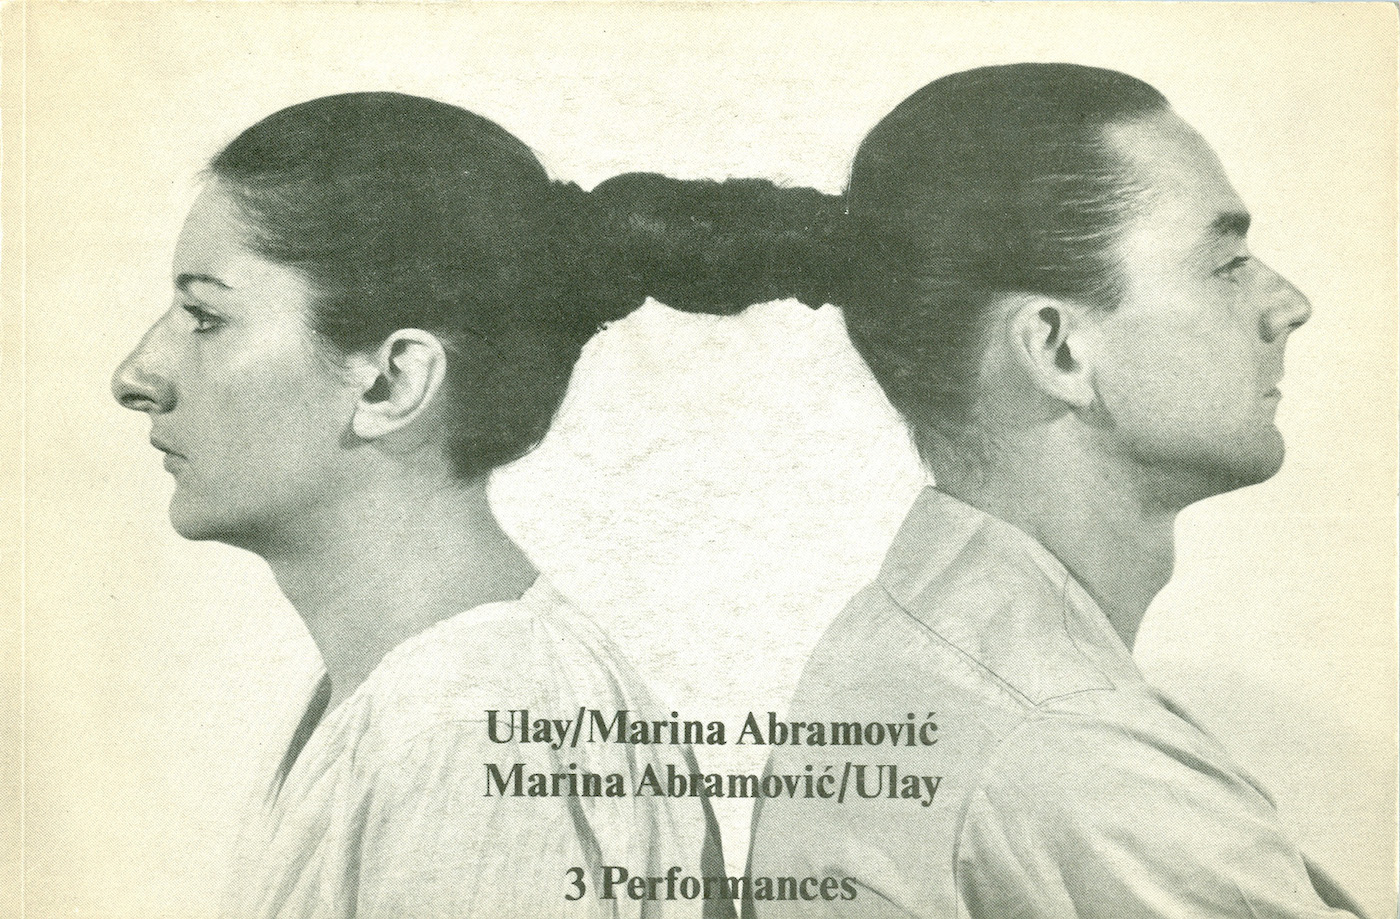 Artists' book by Marina Abramovic and Ulay (via Wikipedia, used under CC VY 3.0 license)